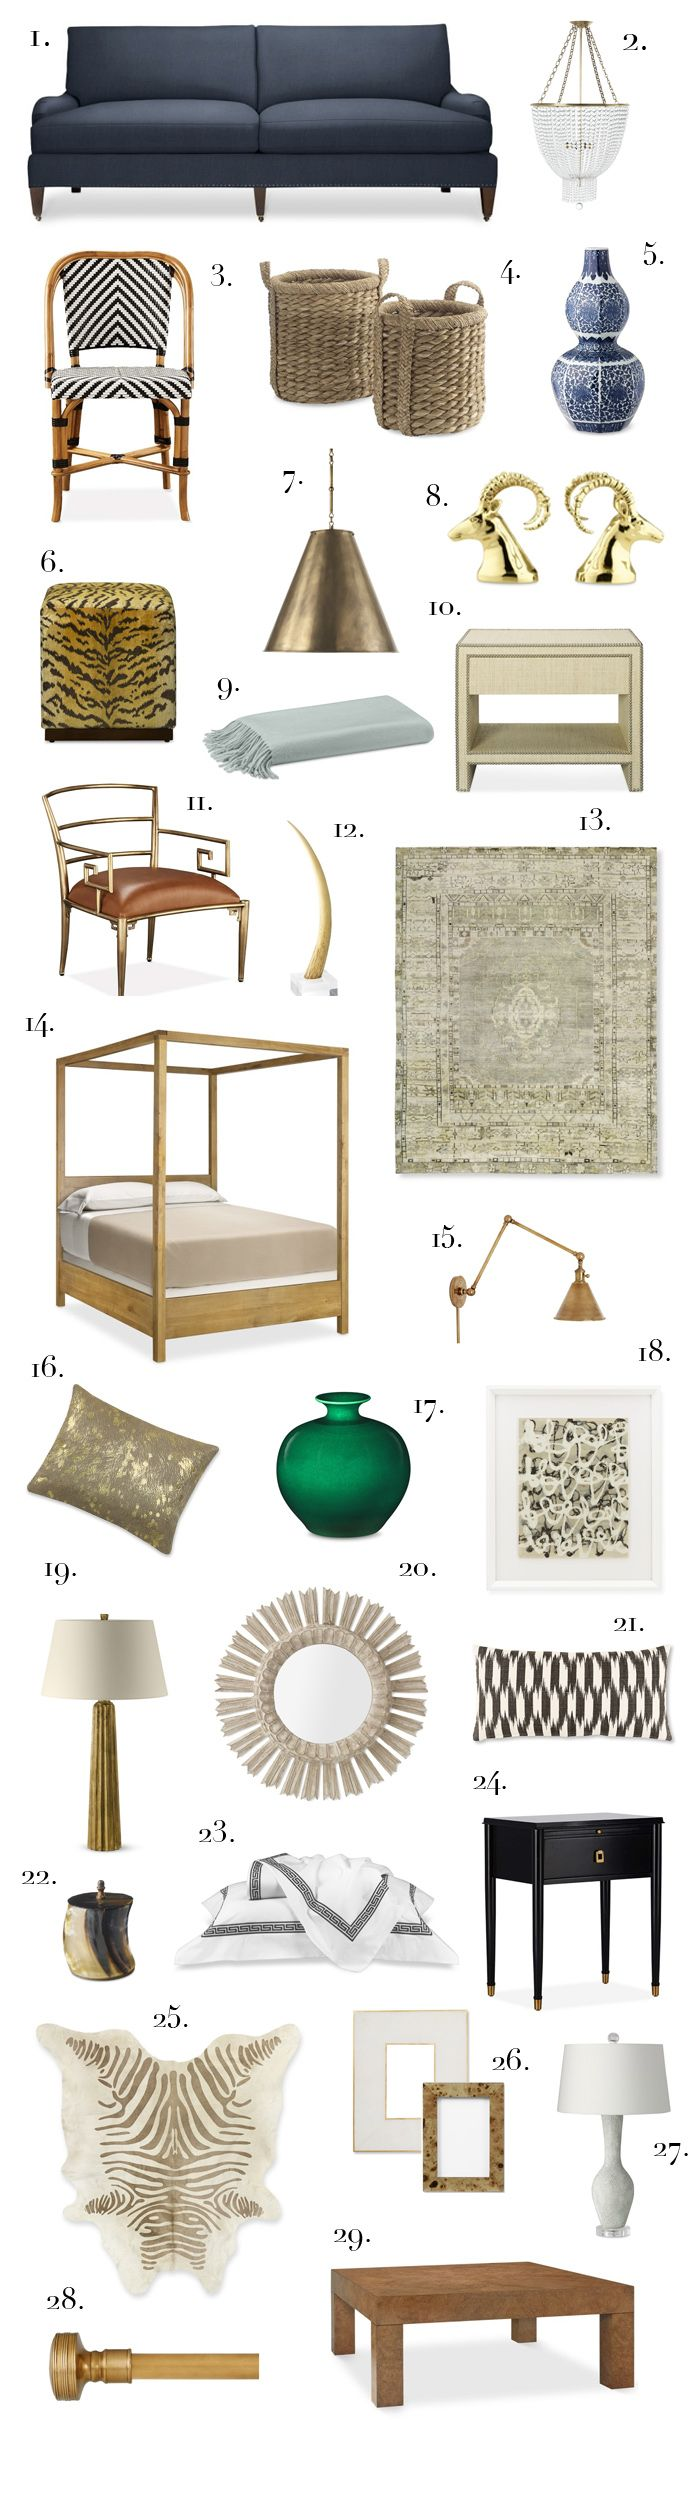 Elements of Style Blog | Timeless Classics from Williams Sonoma Home. | http://www.elementsofstyleblog.com